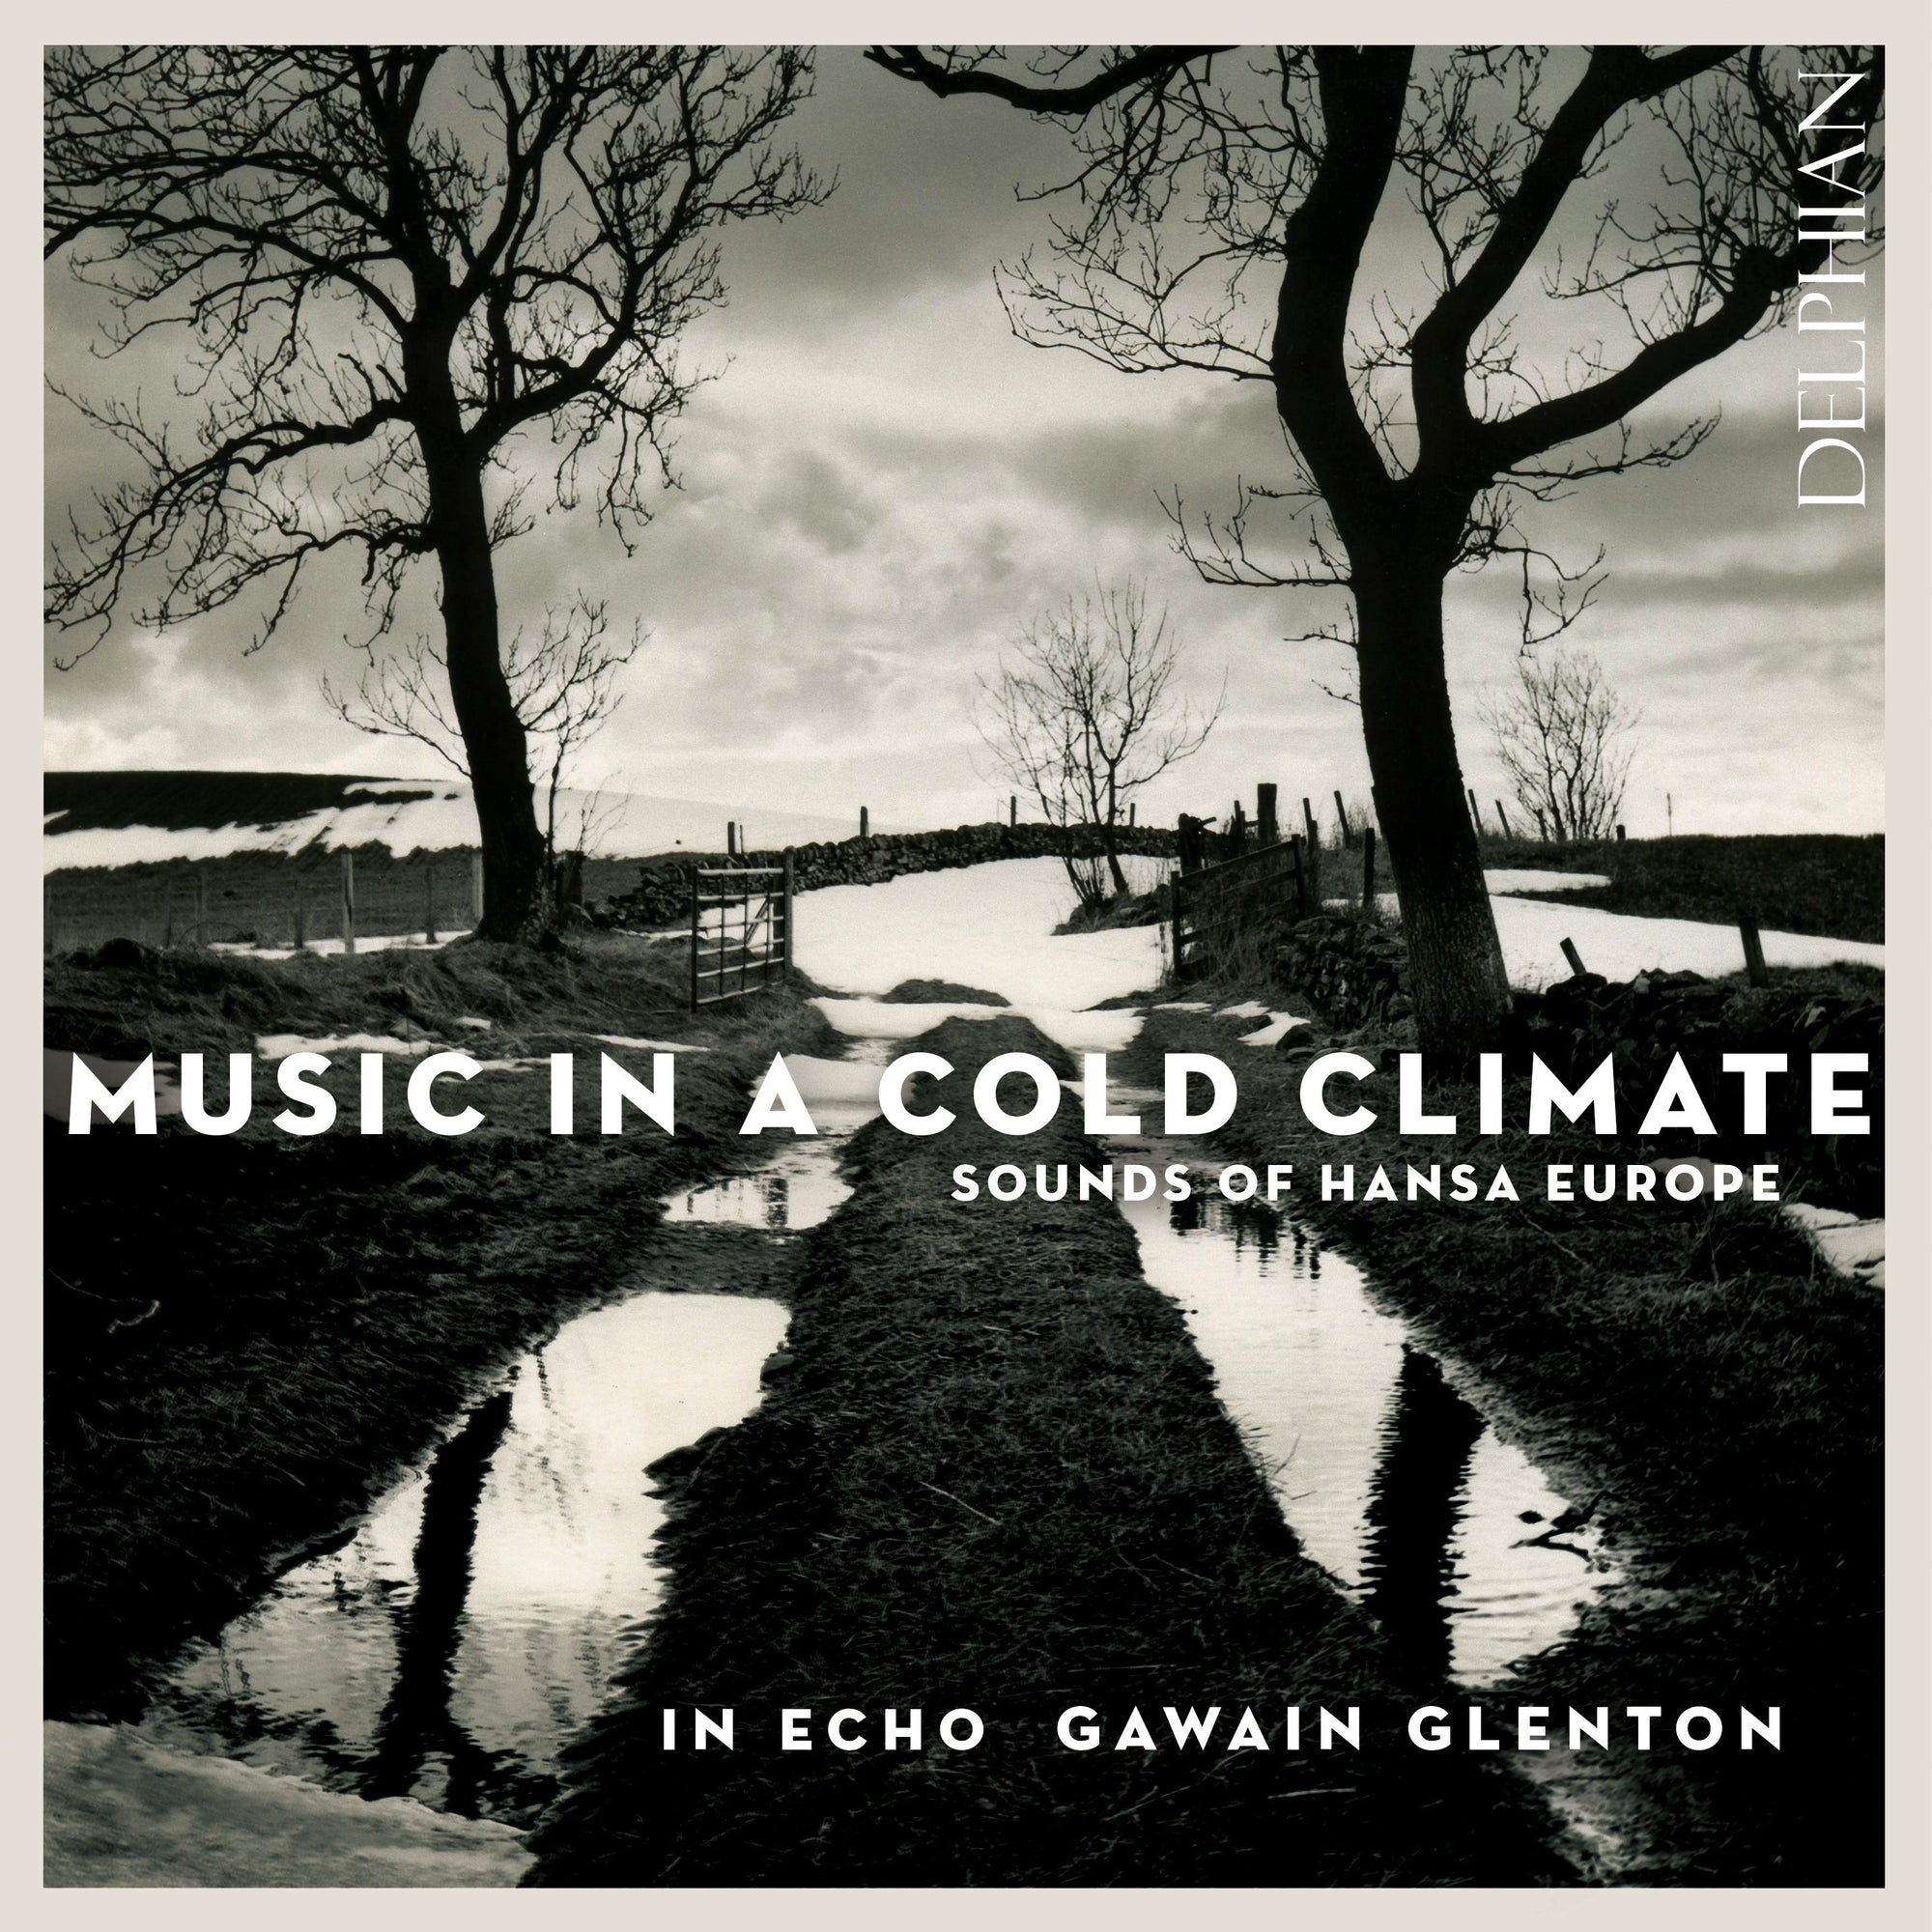 Music in a Cold Climate CD Delphian Records